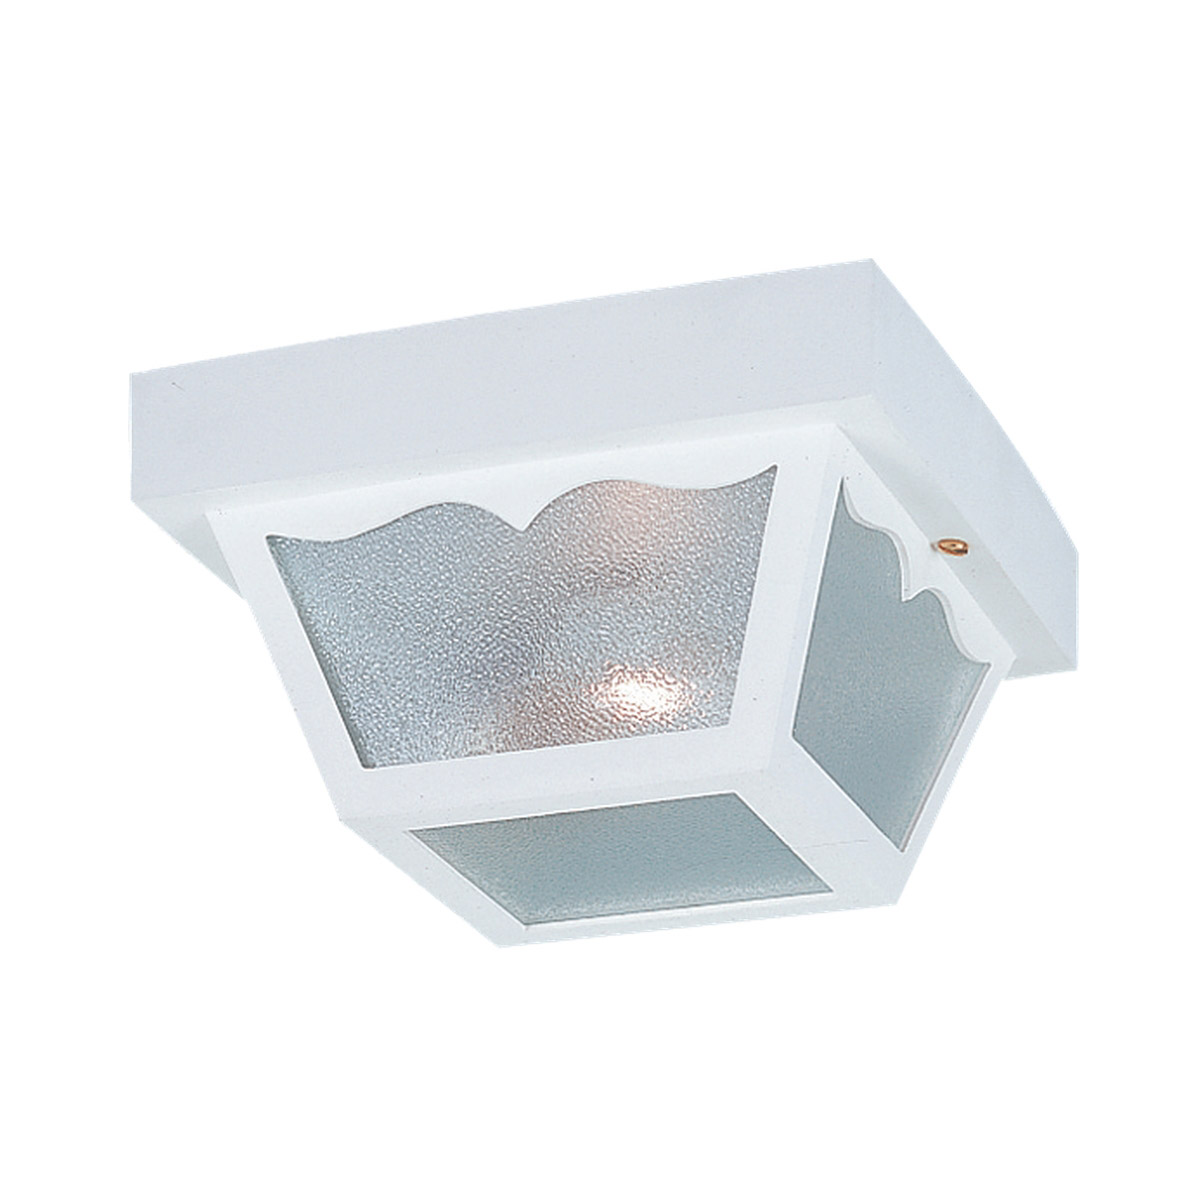 Sea Gull Lighting Signature 2 Light Outdoor Ceiling Fixture in White 7569-15 photo